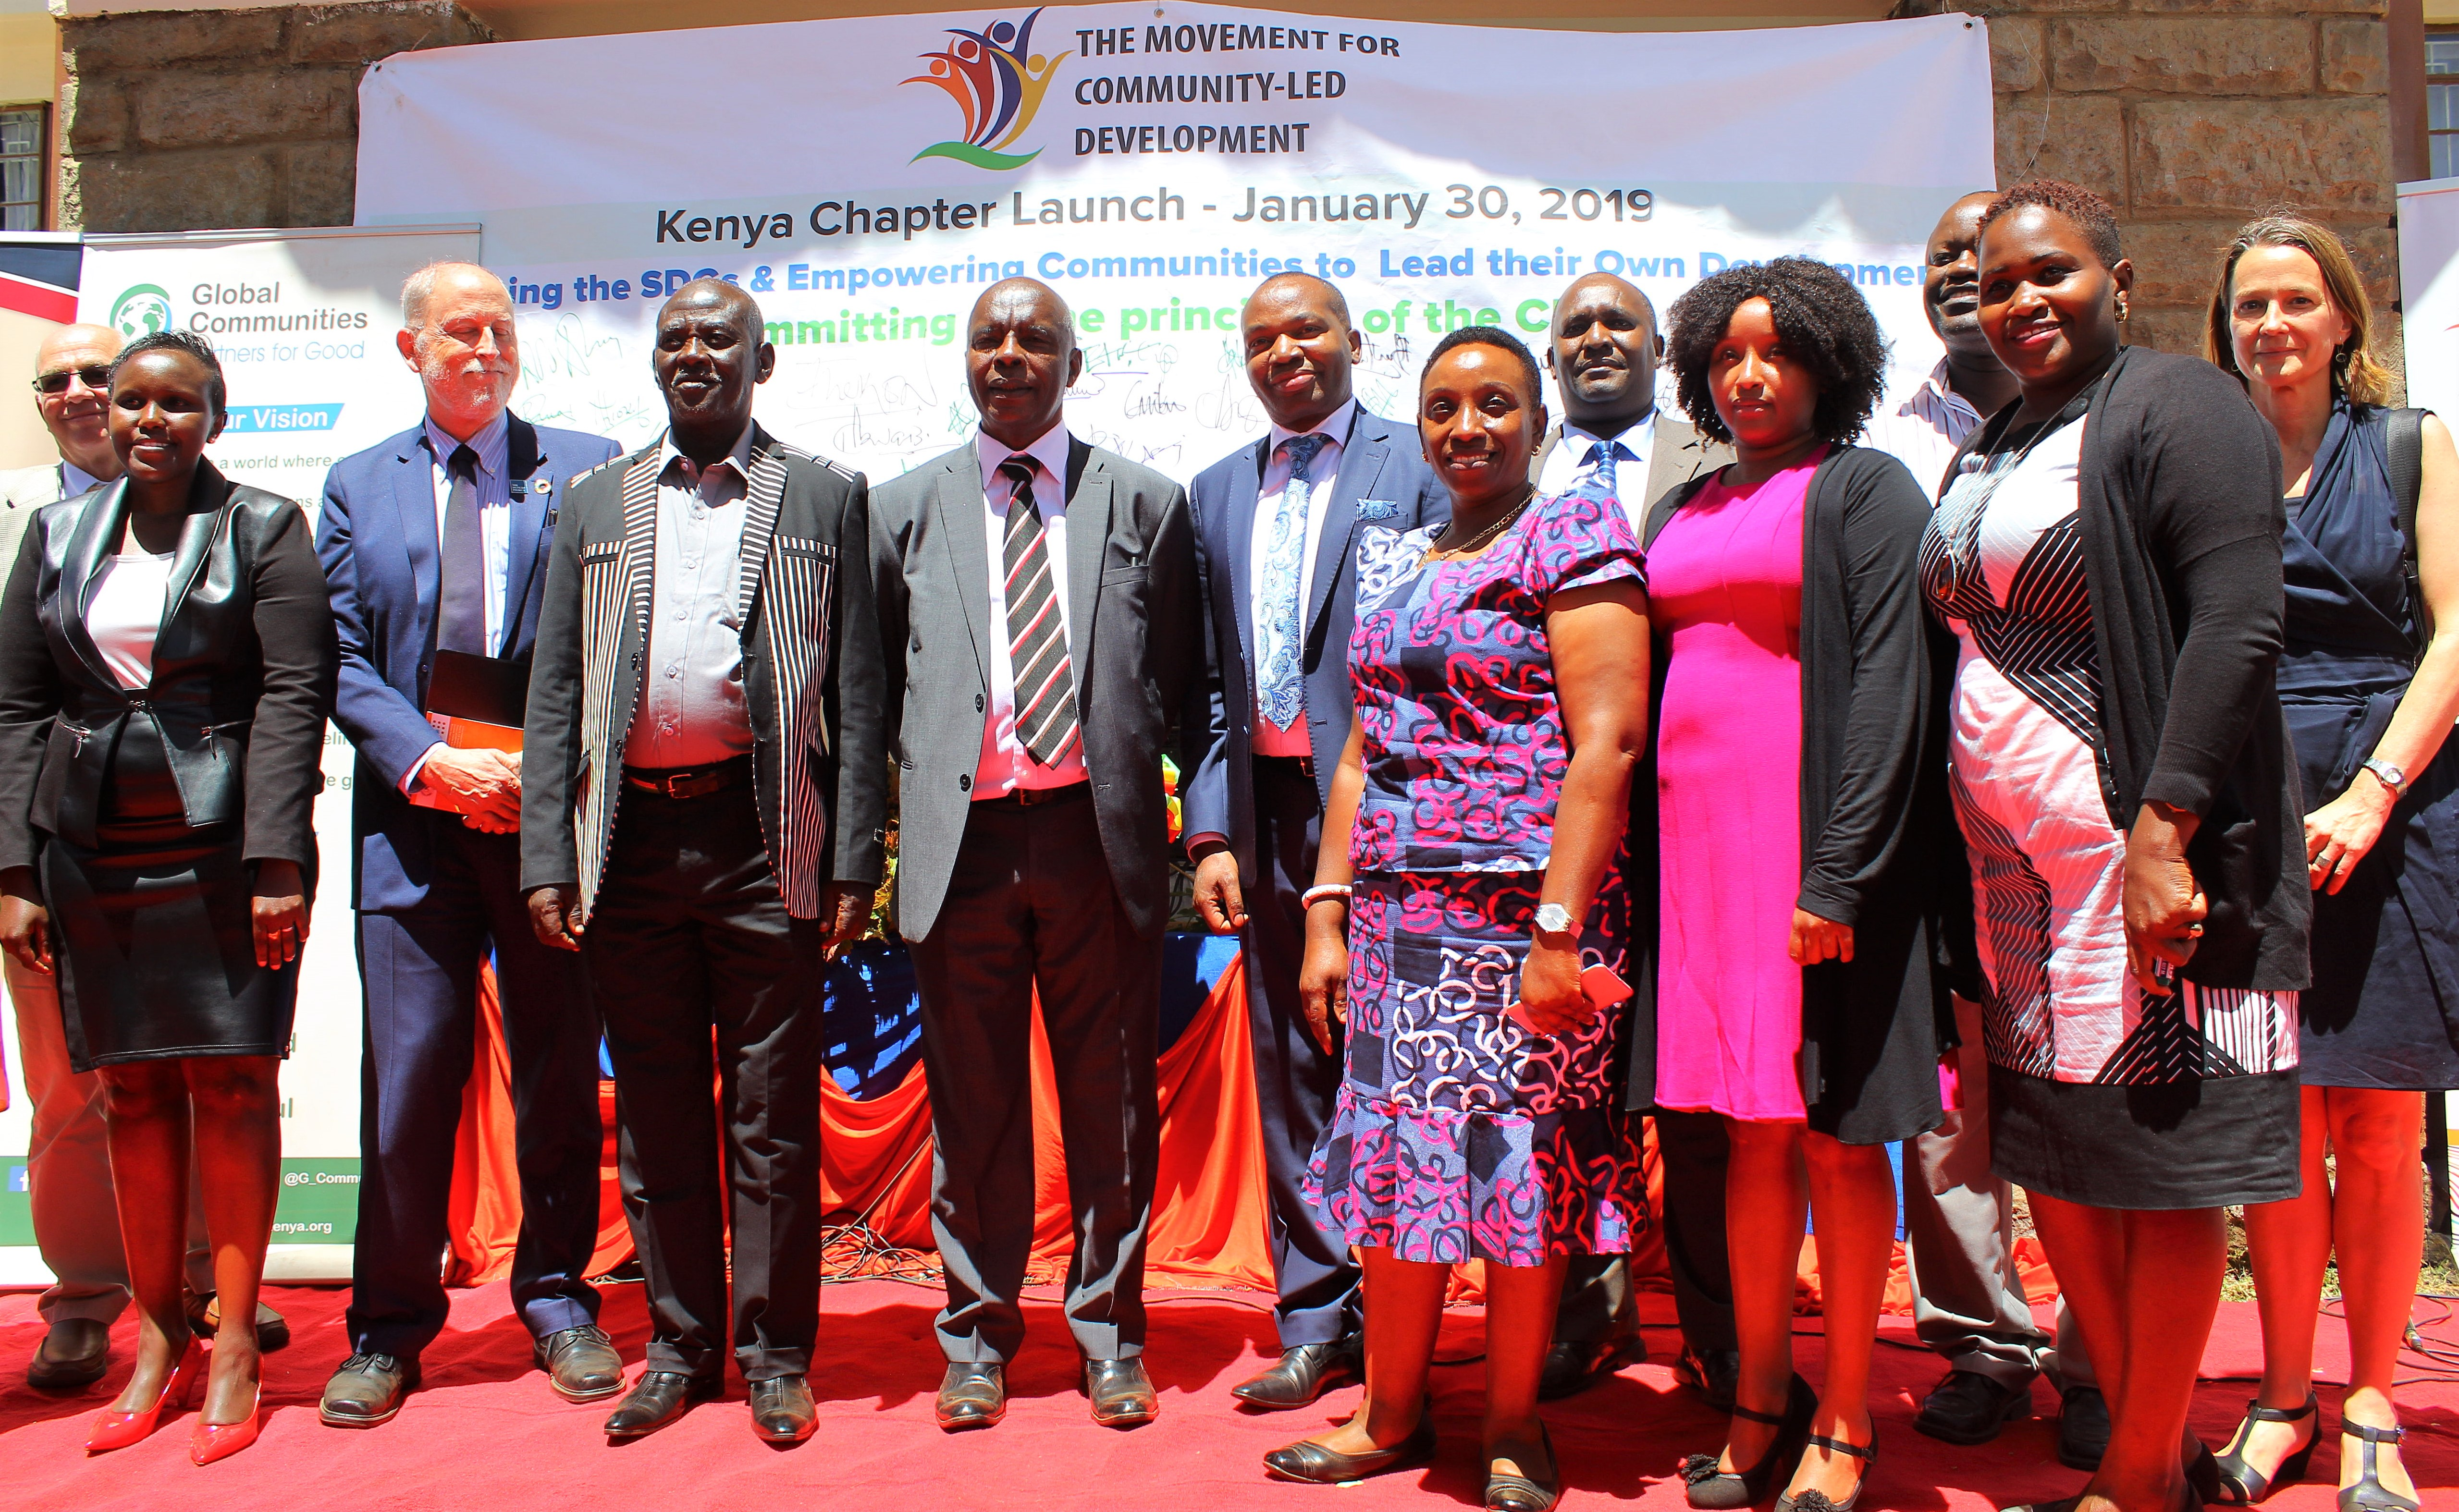 The Community-led Development (CLD) Movement Launches Kenya Chapter